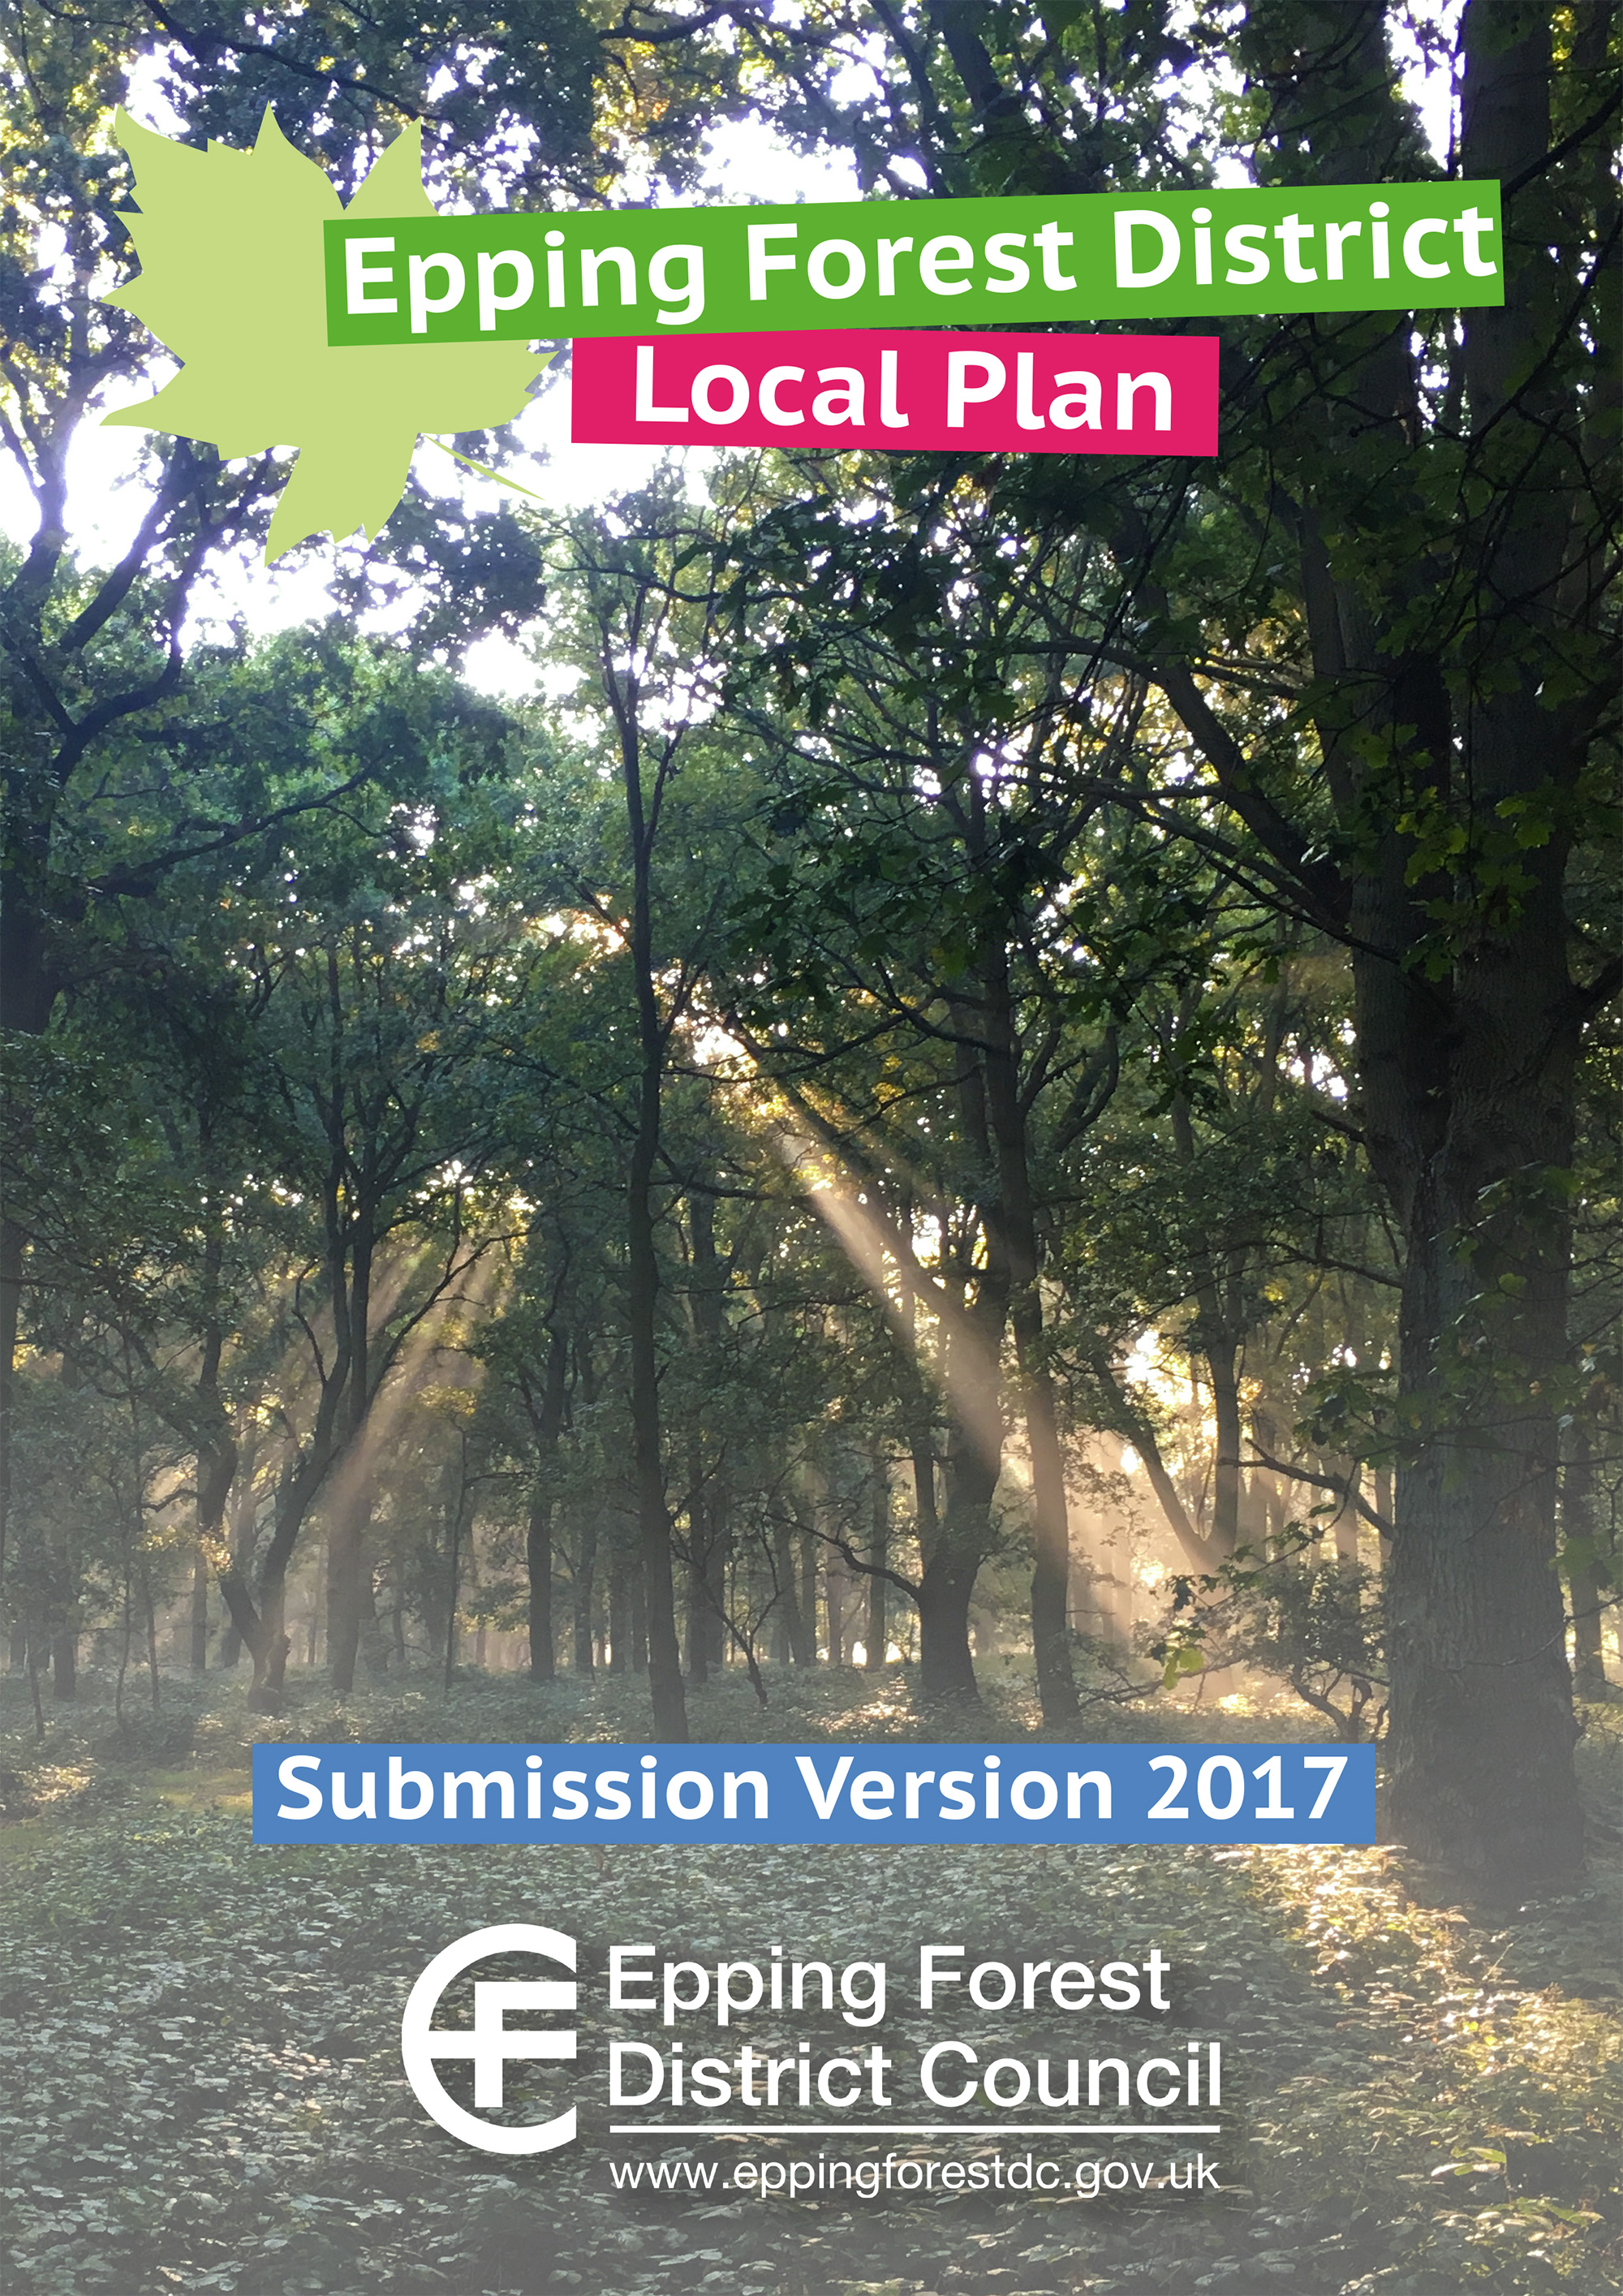 Epping Forest District Local Plan Submission screenshot link leads to the full document